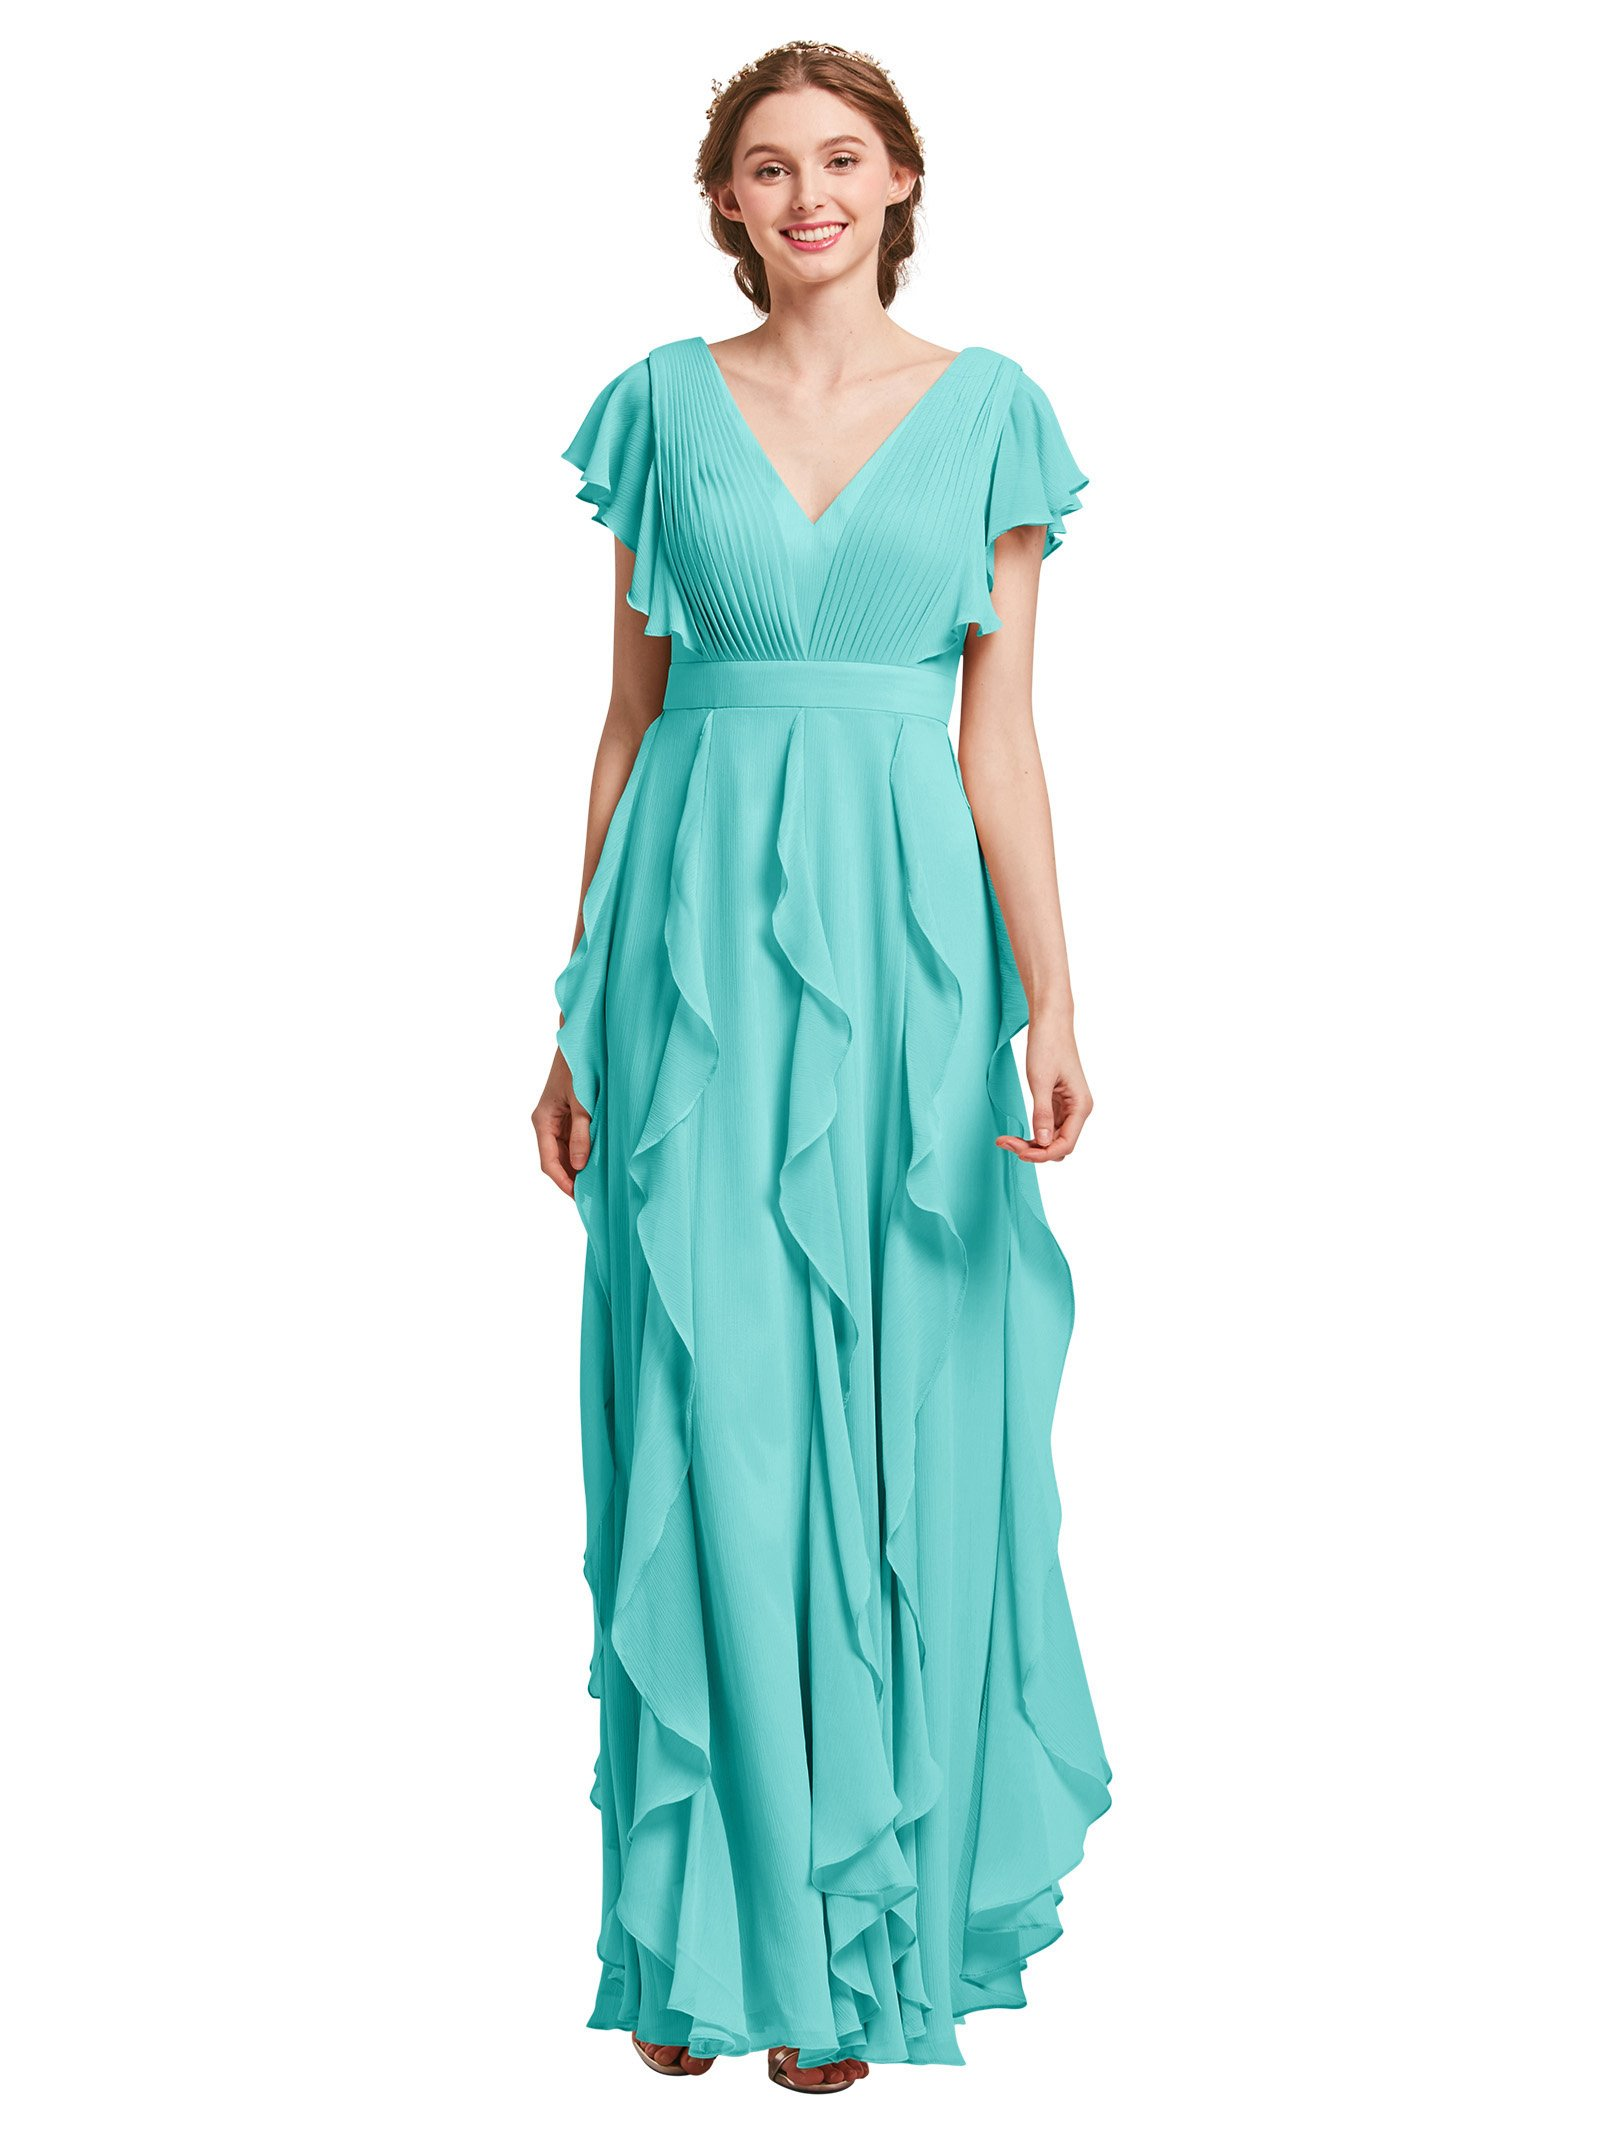 AW Bridal Plus Size Bridesmaid Dresses for Women Formal Dresses with  Sleeves Chiffon Long Gowns and Evening Dresses, Tiffany, US20